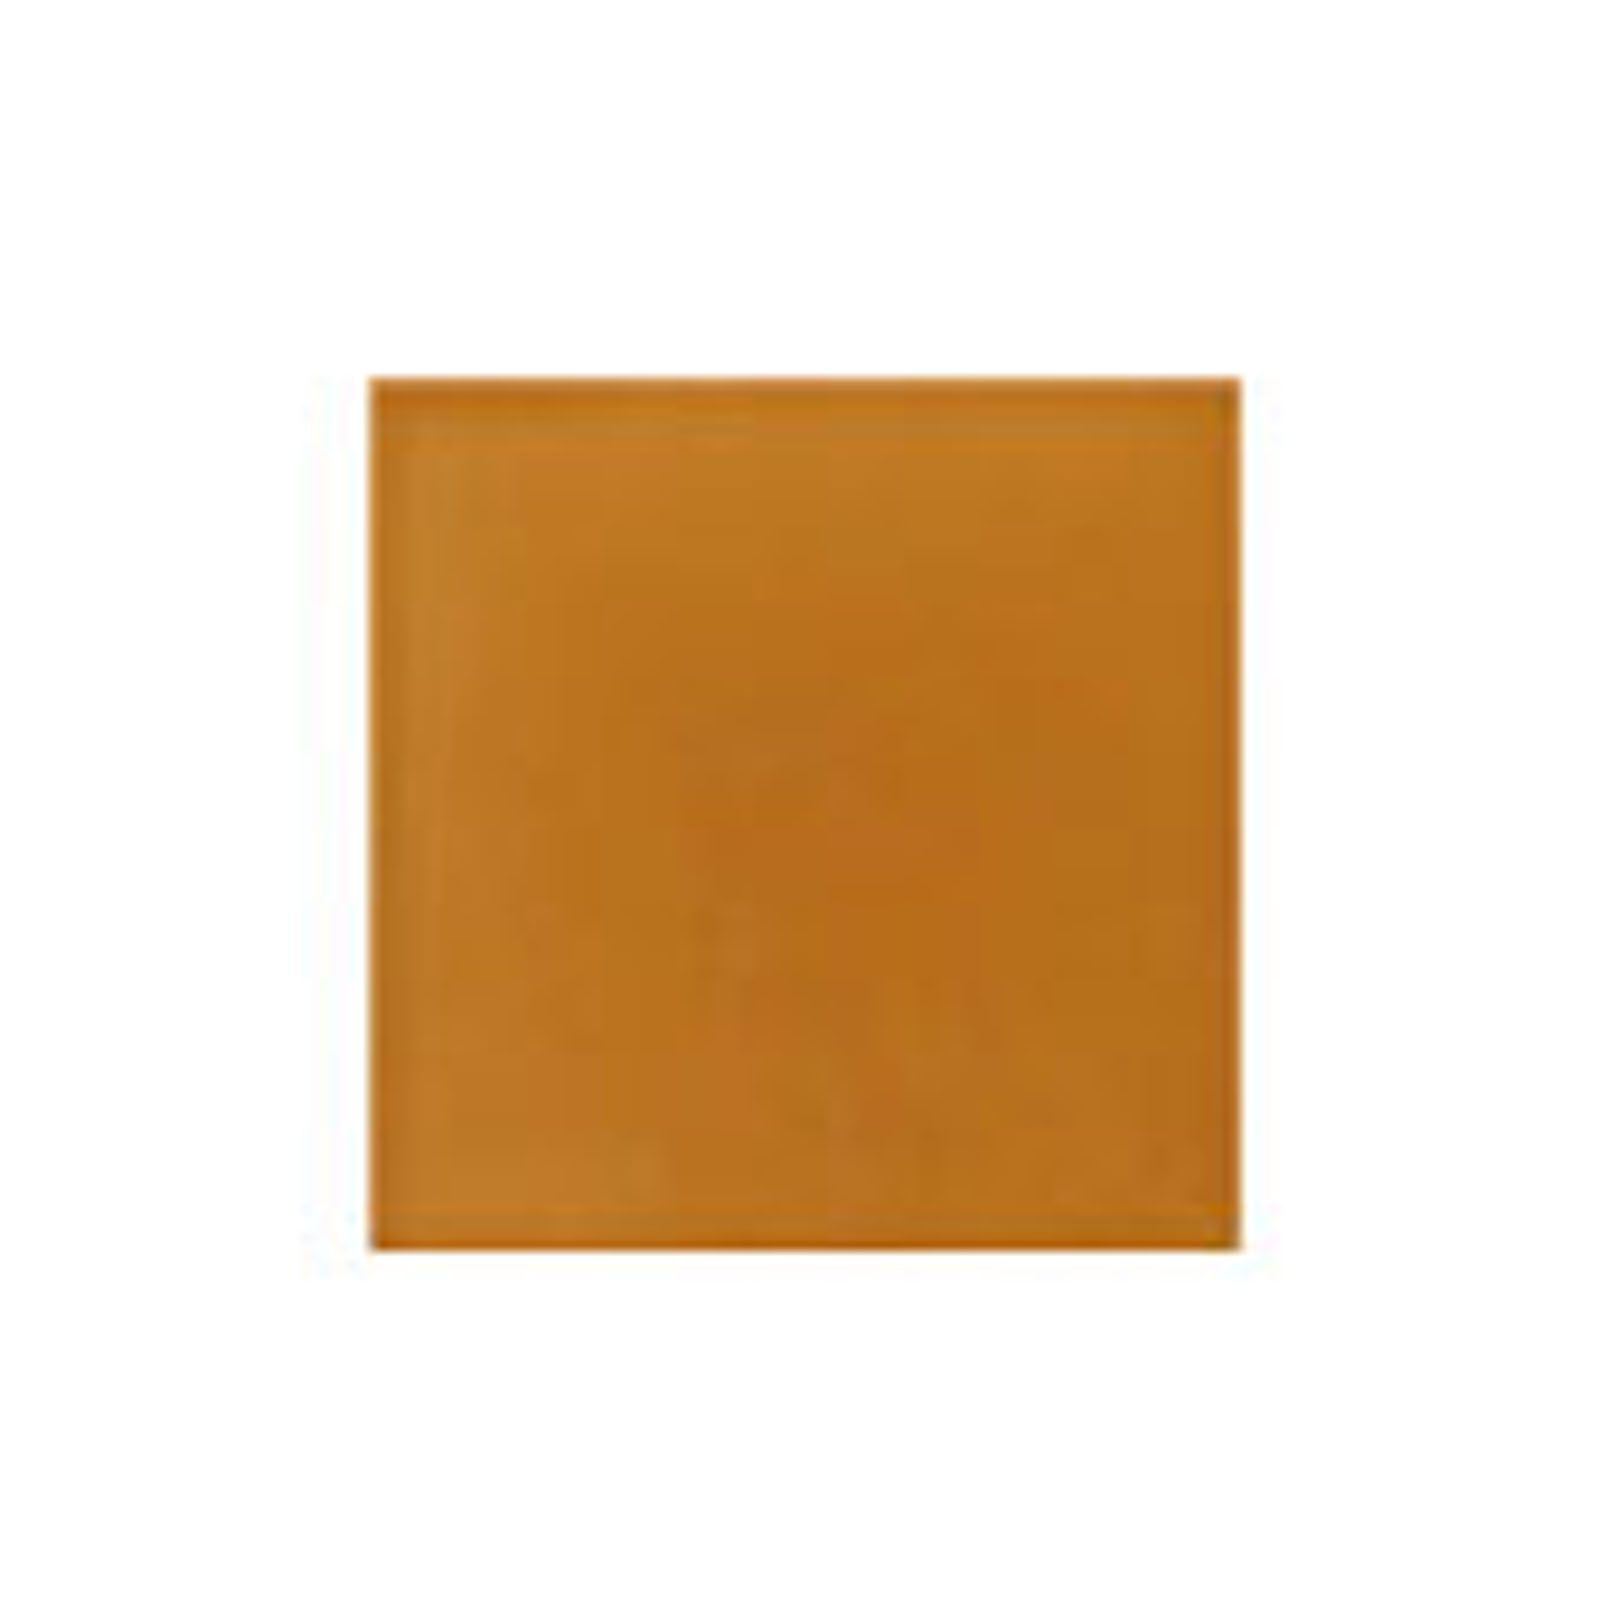 Victorian Field Tiles 152x152mm Or 152x75mm Or 152x50mm Or 152x38mm Exterio